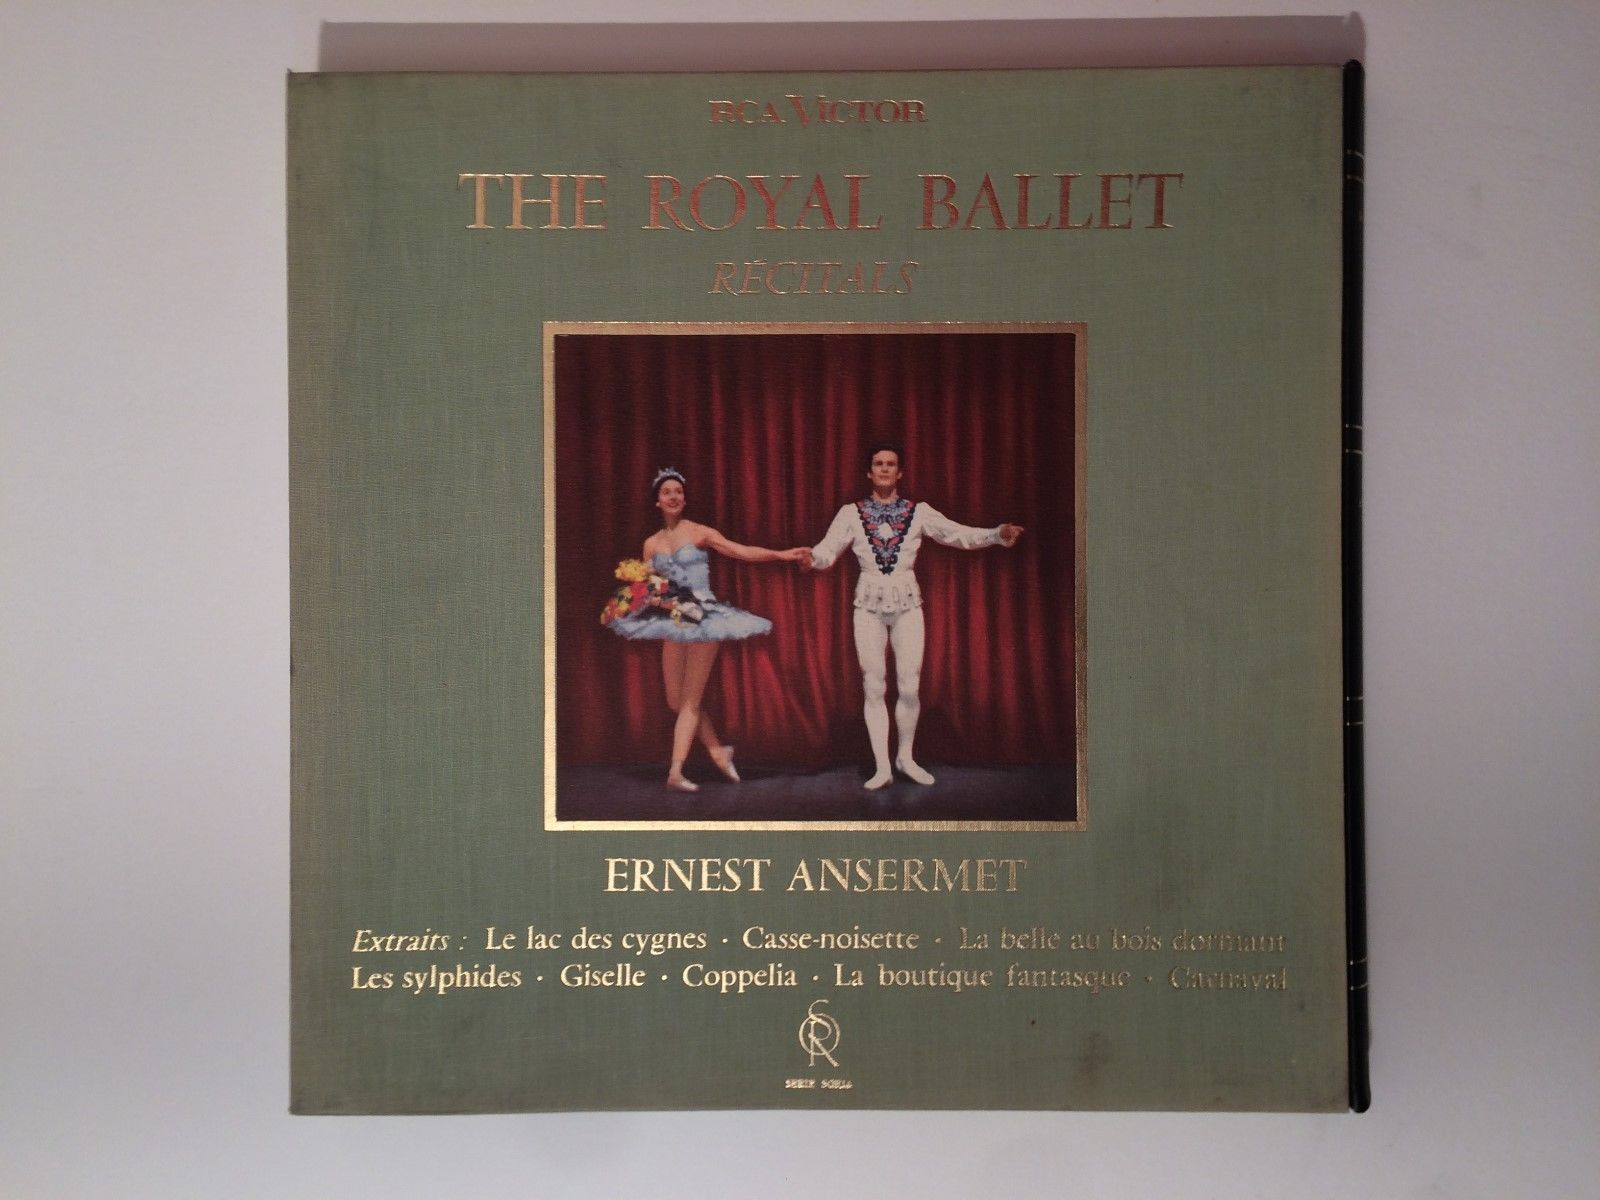 ERNEST ANSERMET The Royal ballet Recitals FRENCH 2LP BOX RCA SOR 640759 STEREO